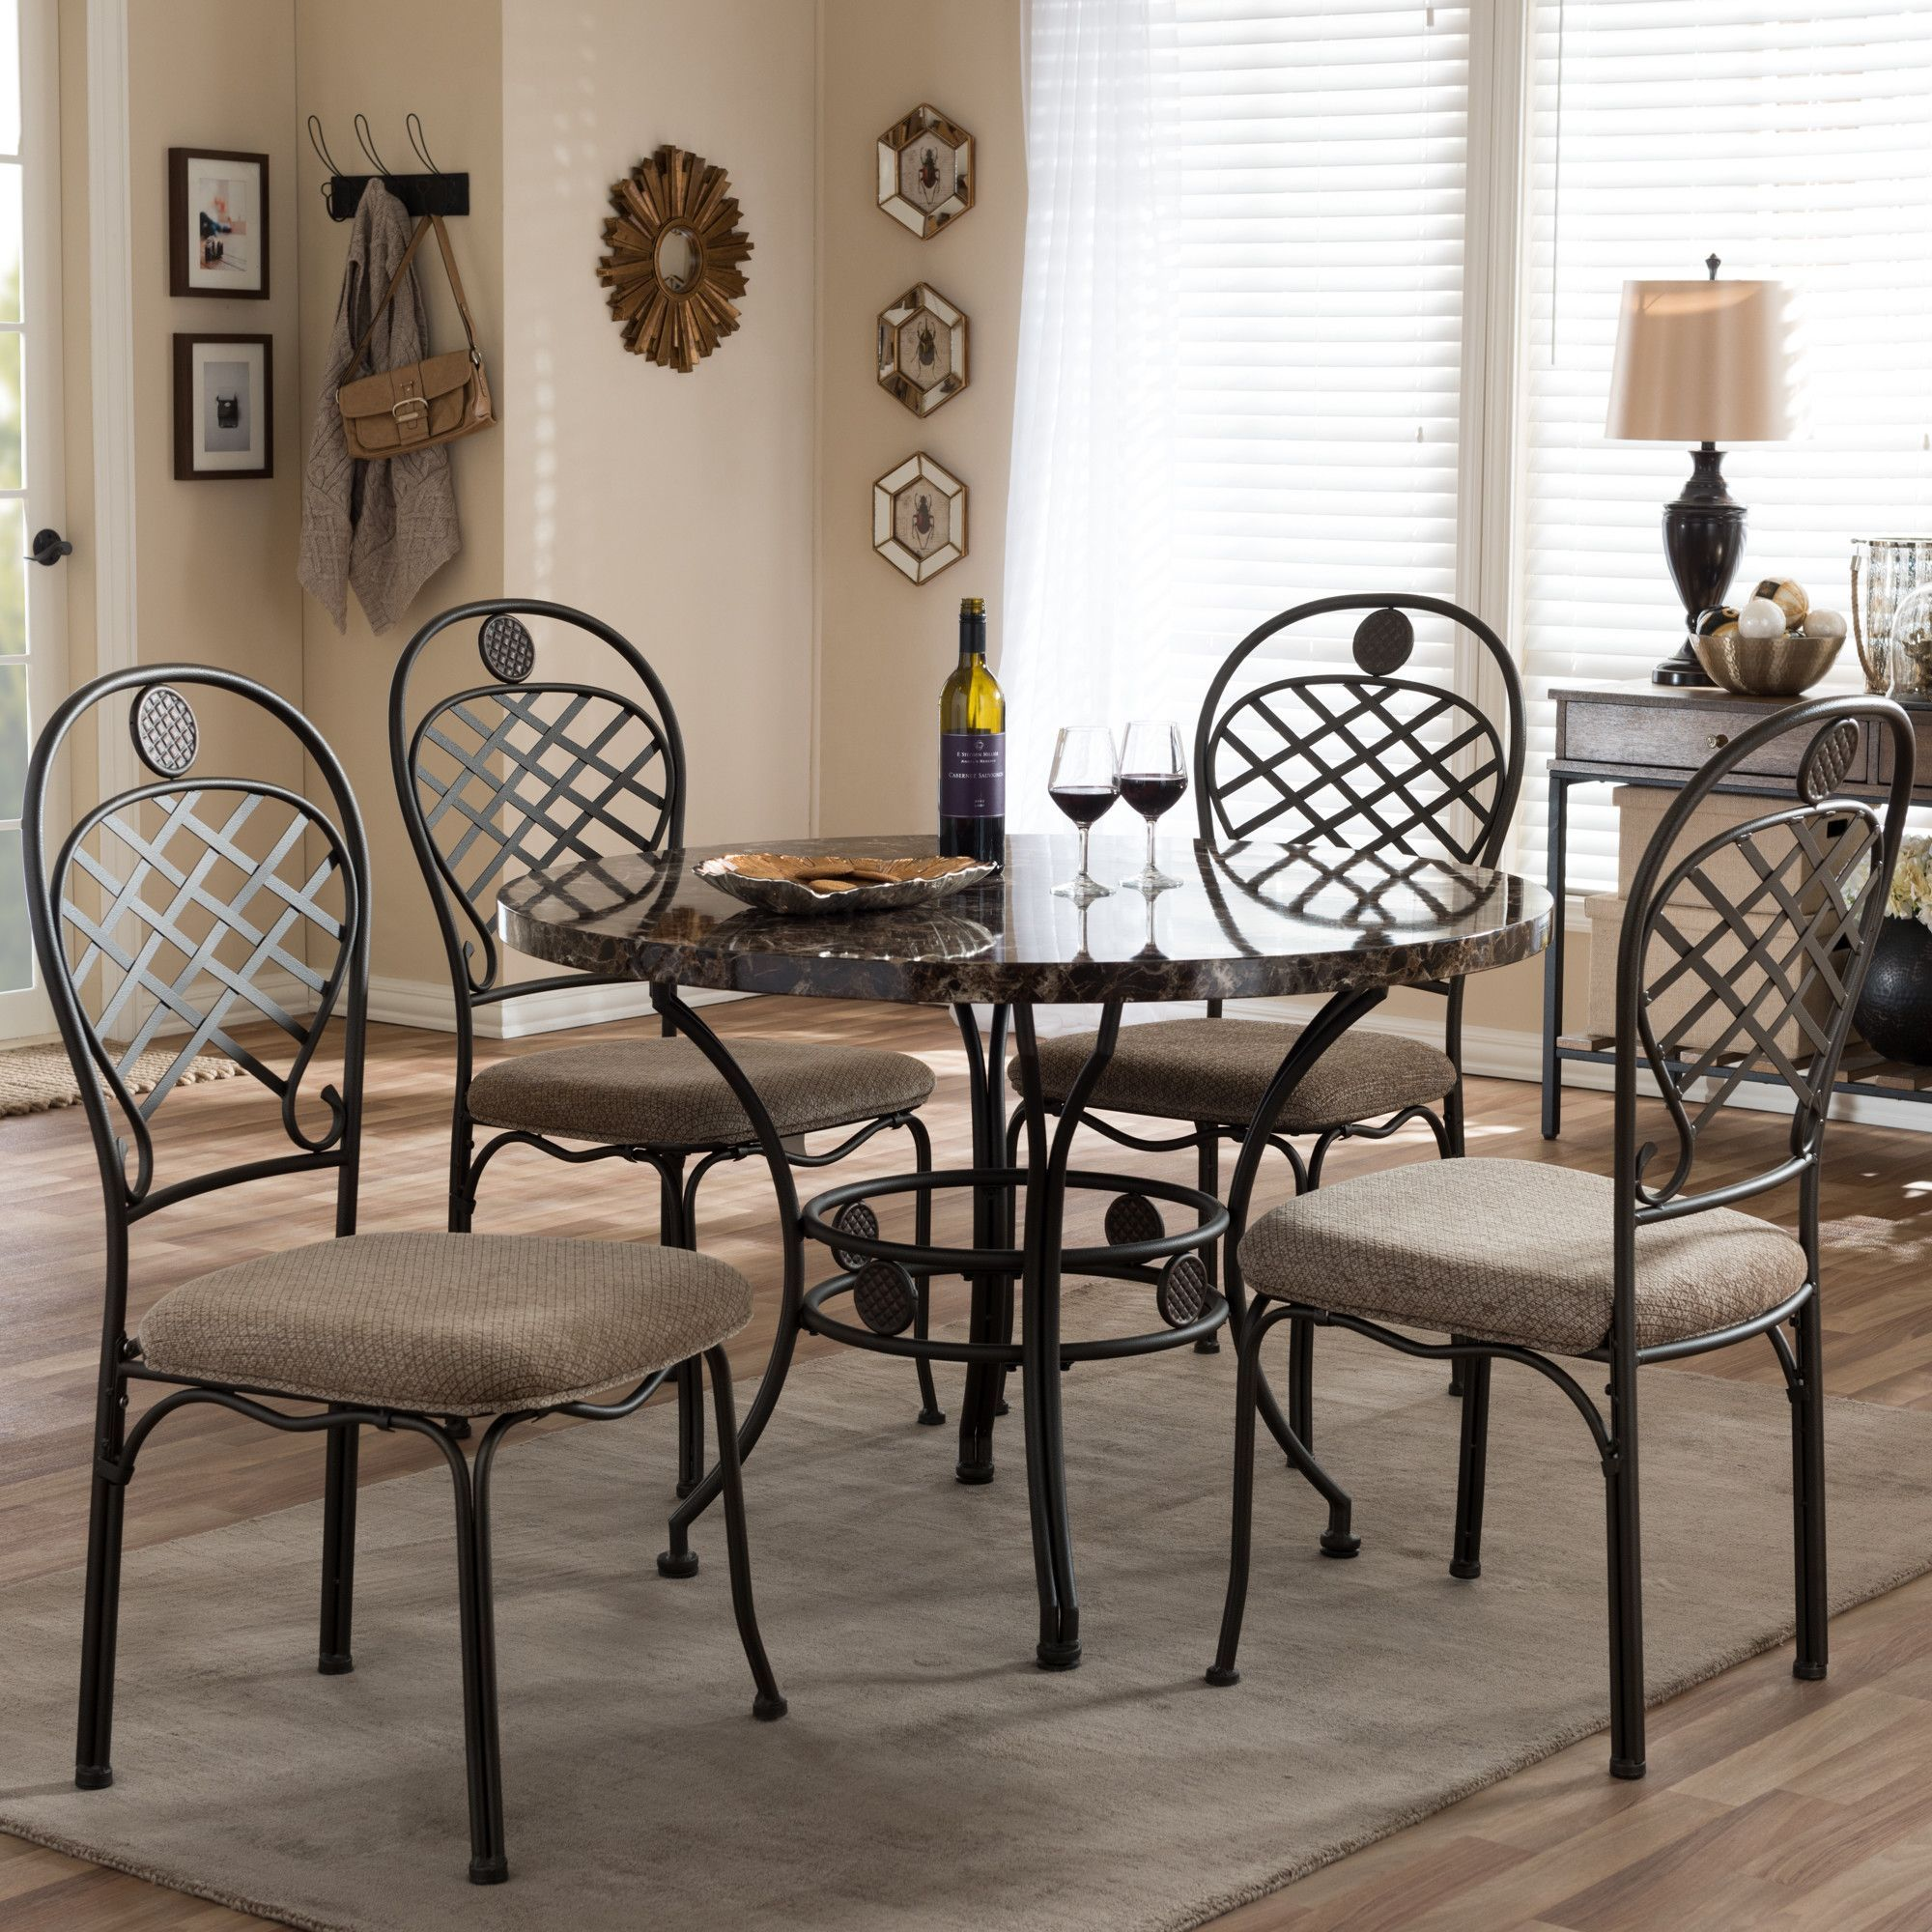 Oak pond piece dining set products pinterest products